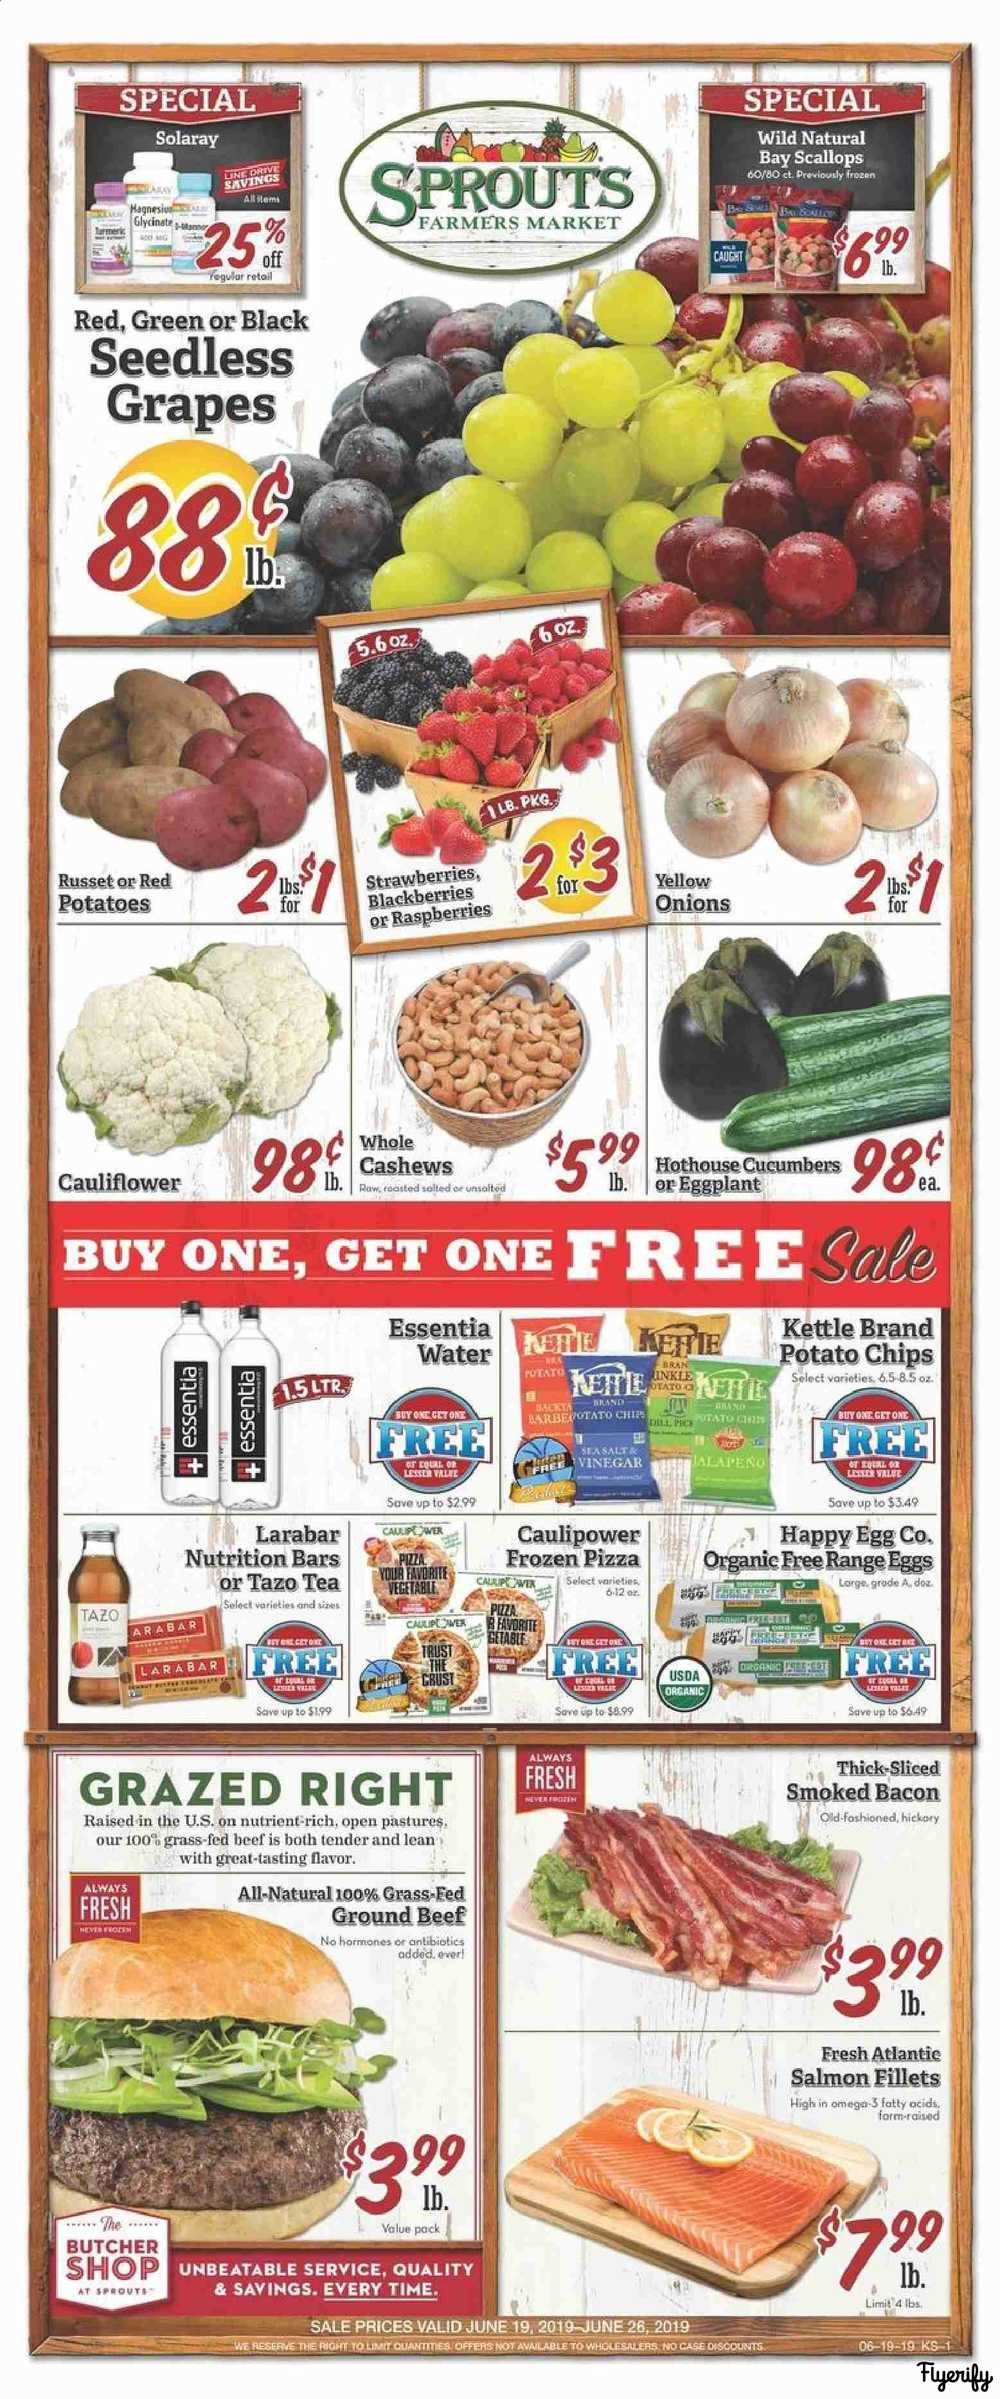 Sprouts Farmers Market Flyers